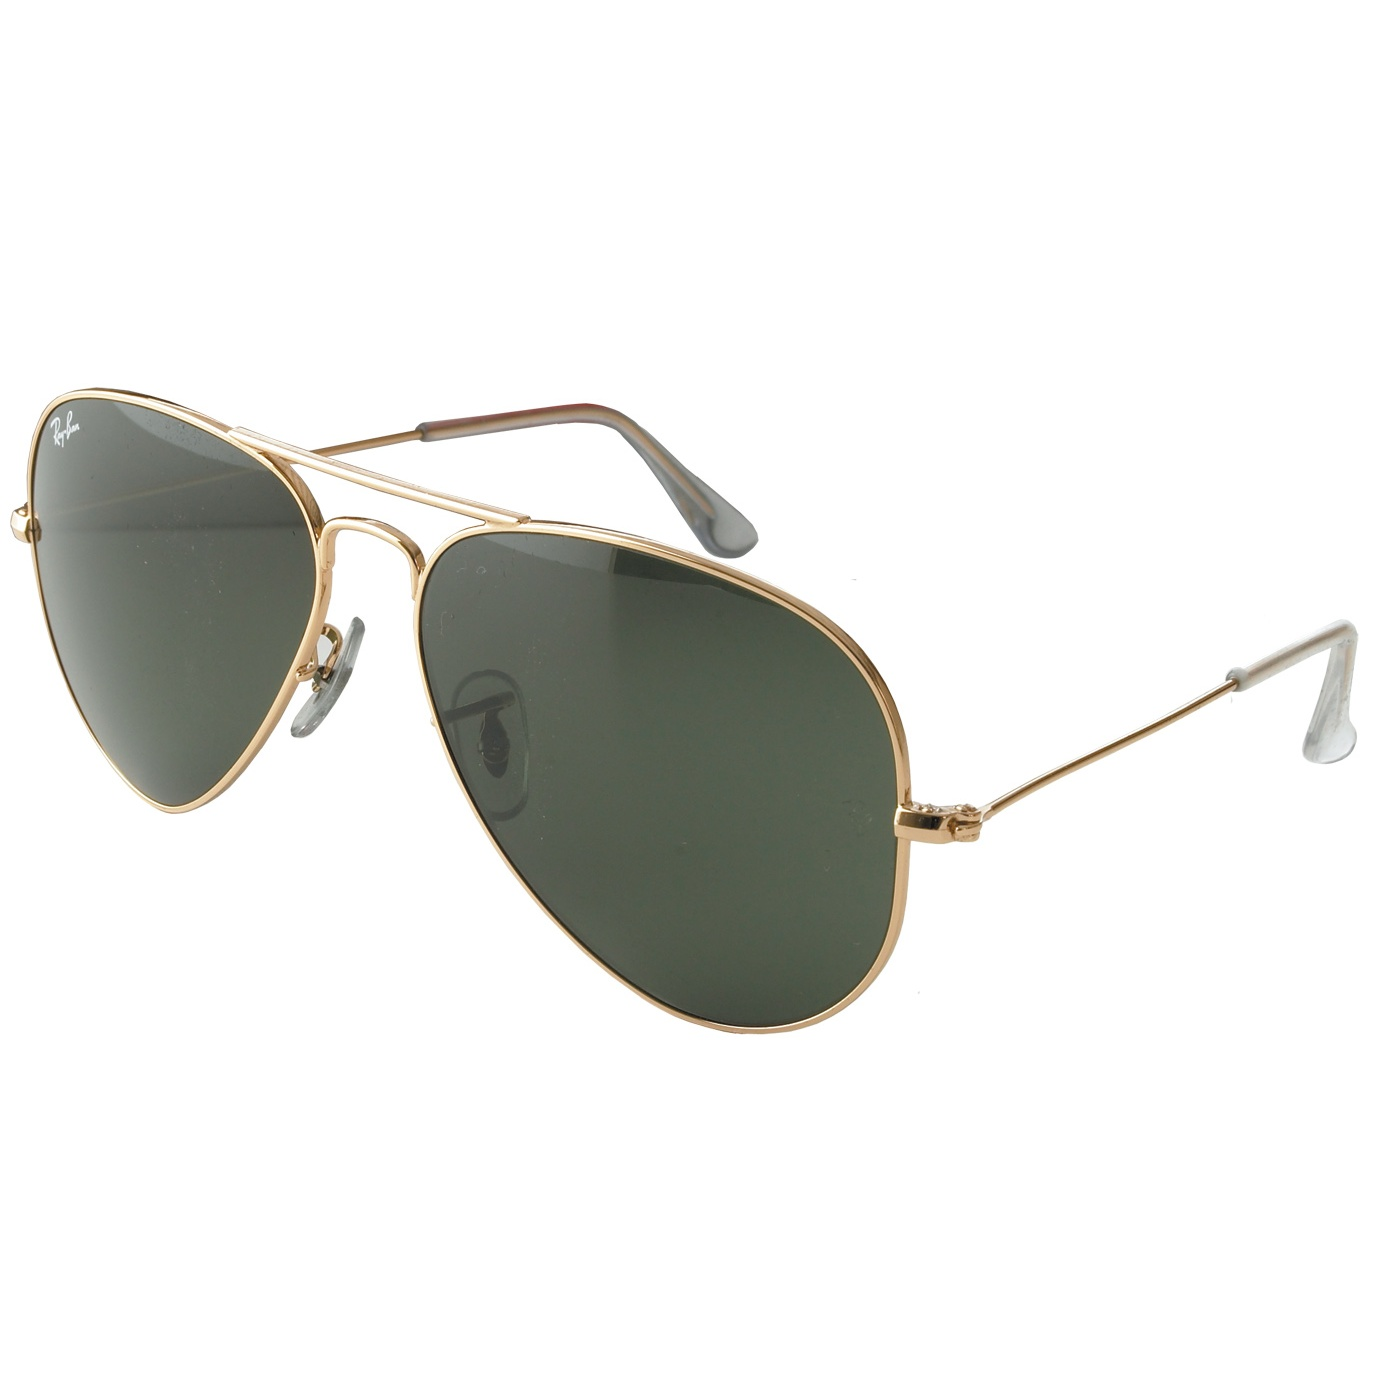 rayban aviator sunglasses gold frame with 62mm g 15 lens. Black Bedroom Furniture Sets. Home Design Ideas